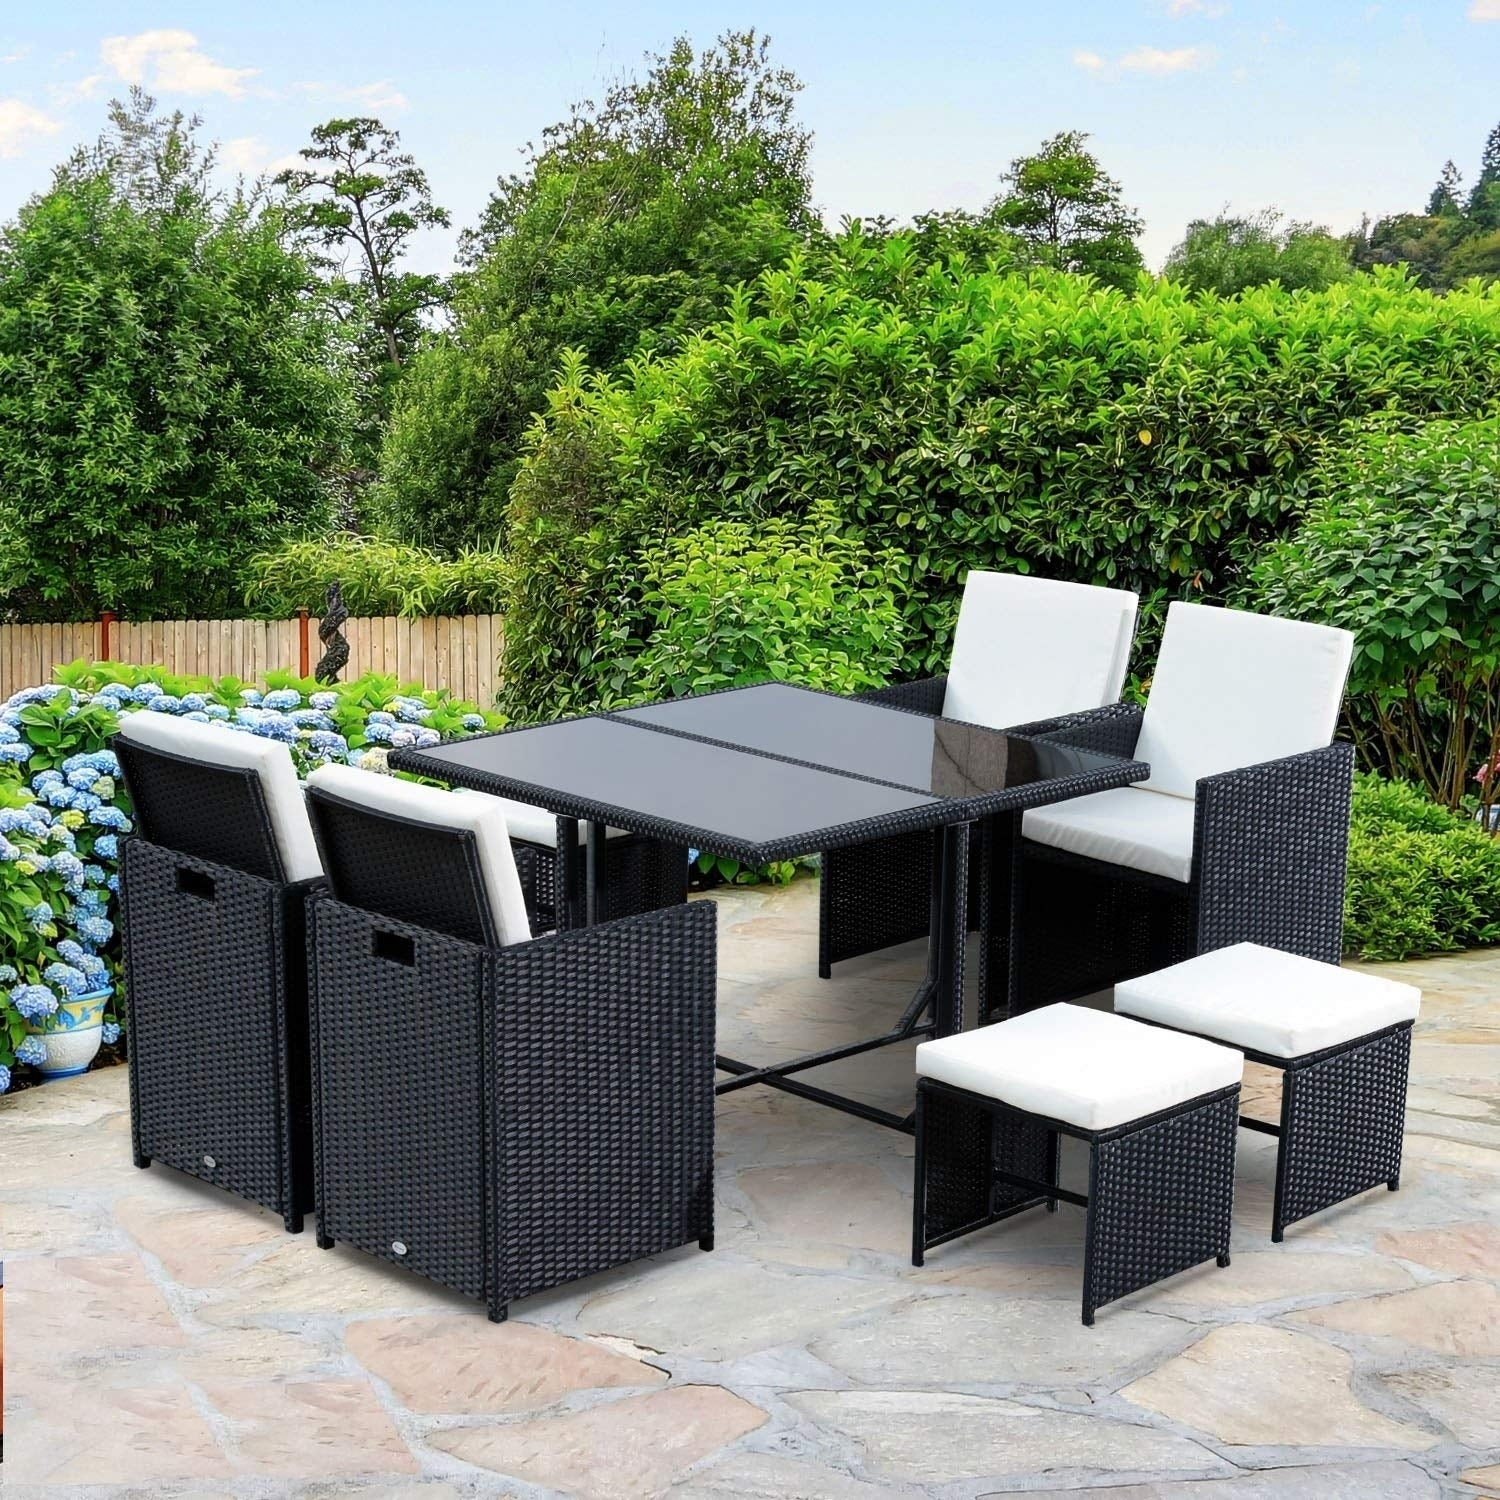 Outsunny 9 Piece Outdoor Rattan Wicker Dining Table And Chairs Patio Furniture Set Free Shipping Today 22286604